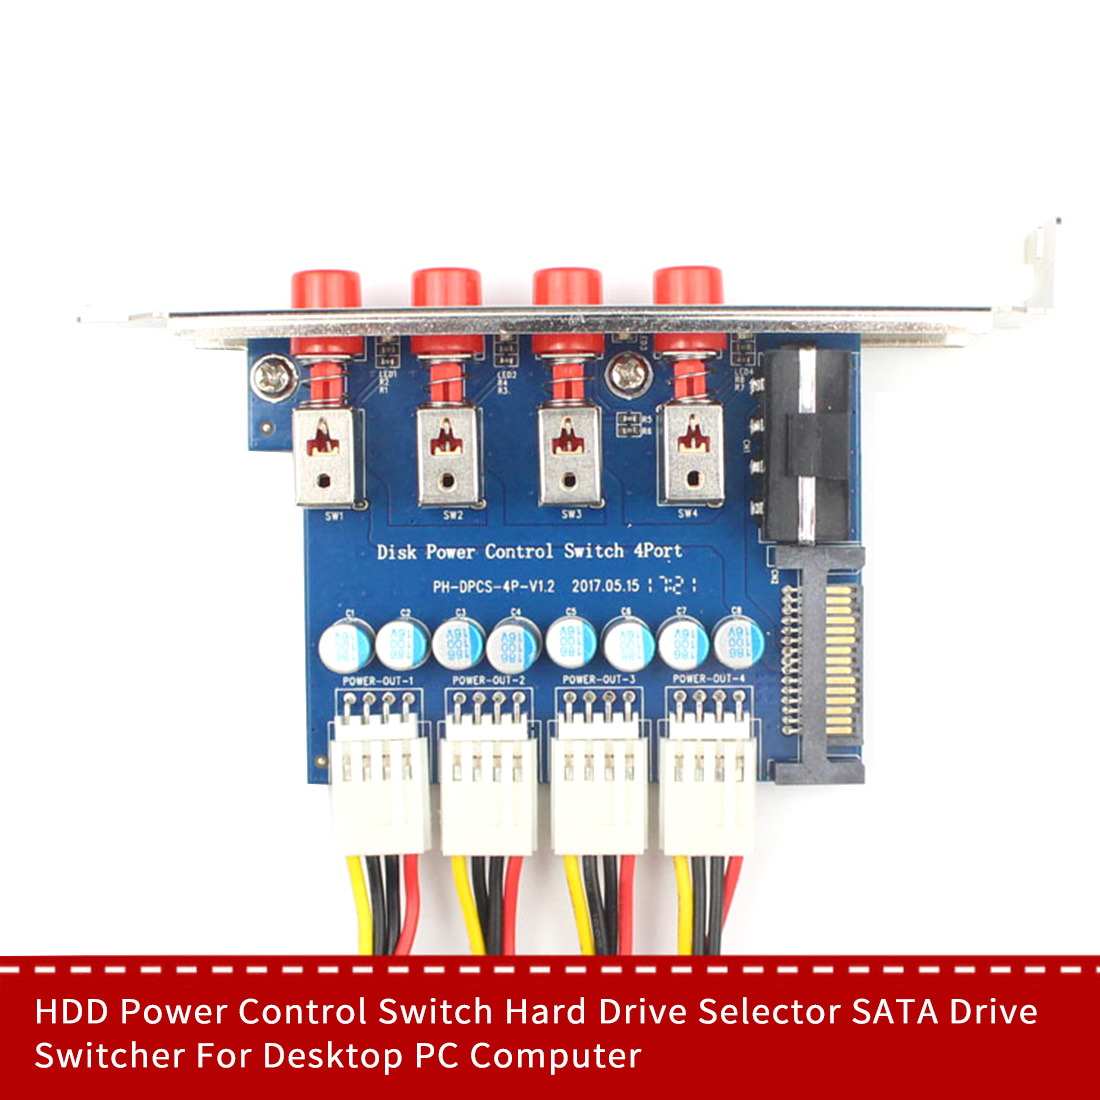 JMT 4-Way HDD Power Control Switch Hard Drive Selector SATA Drive Switcher SATA Large 4pin Powered Expansion Card